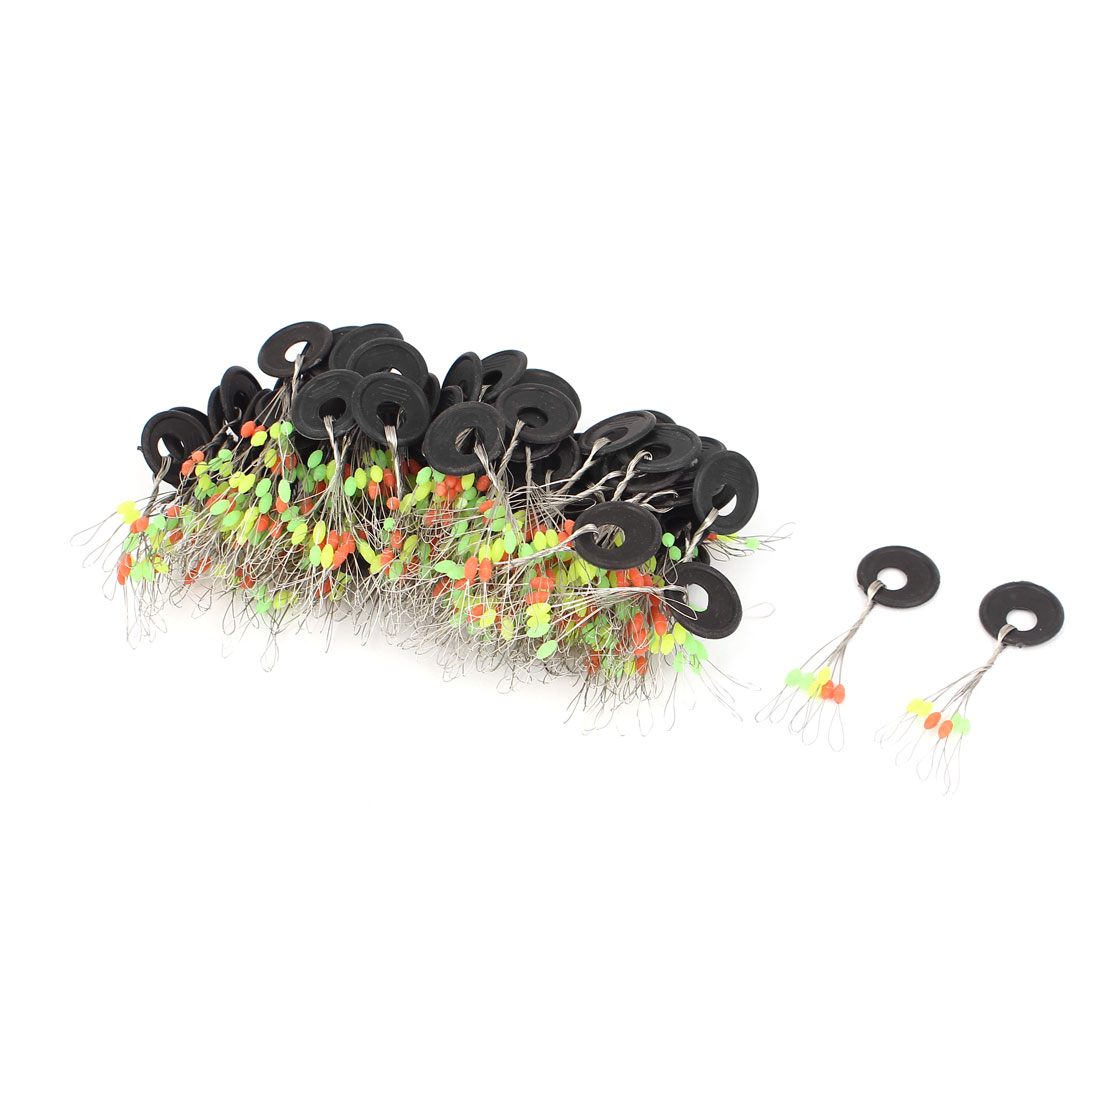 100pcs 6 in 1 Design Size S Colorful Rubber Oval Bead Fishing Bobber Stopper Floater Float Fish Tackle